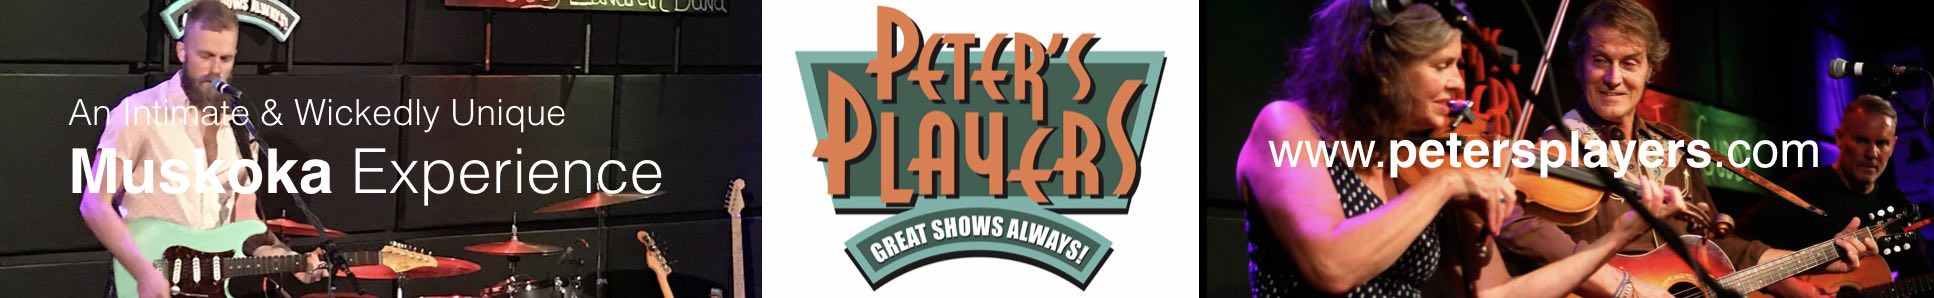 Peters Players-03